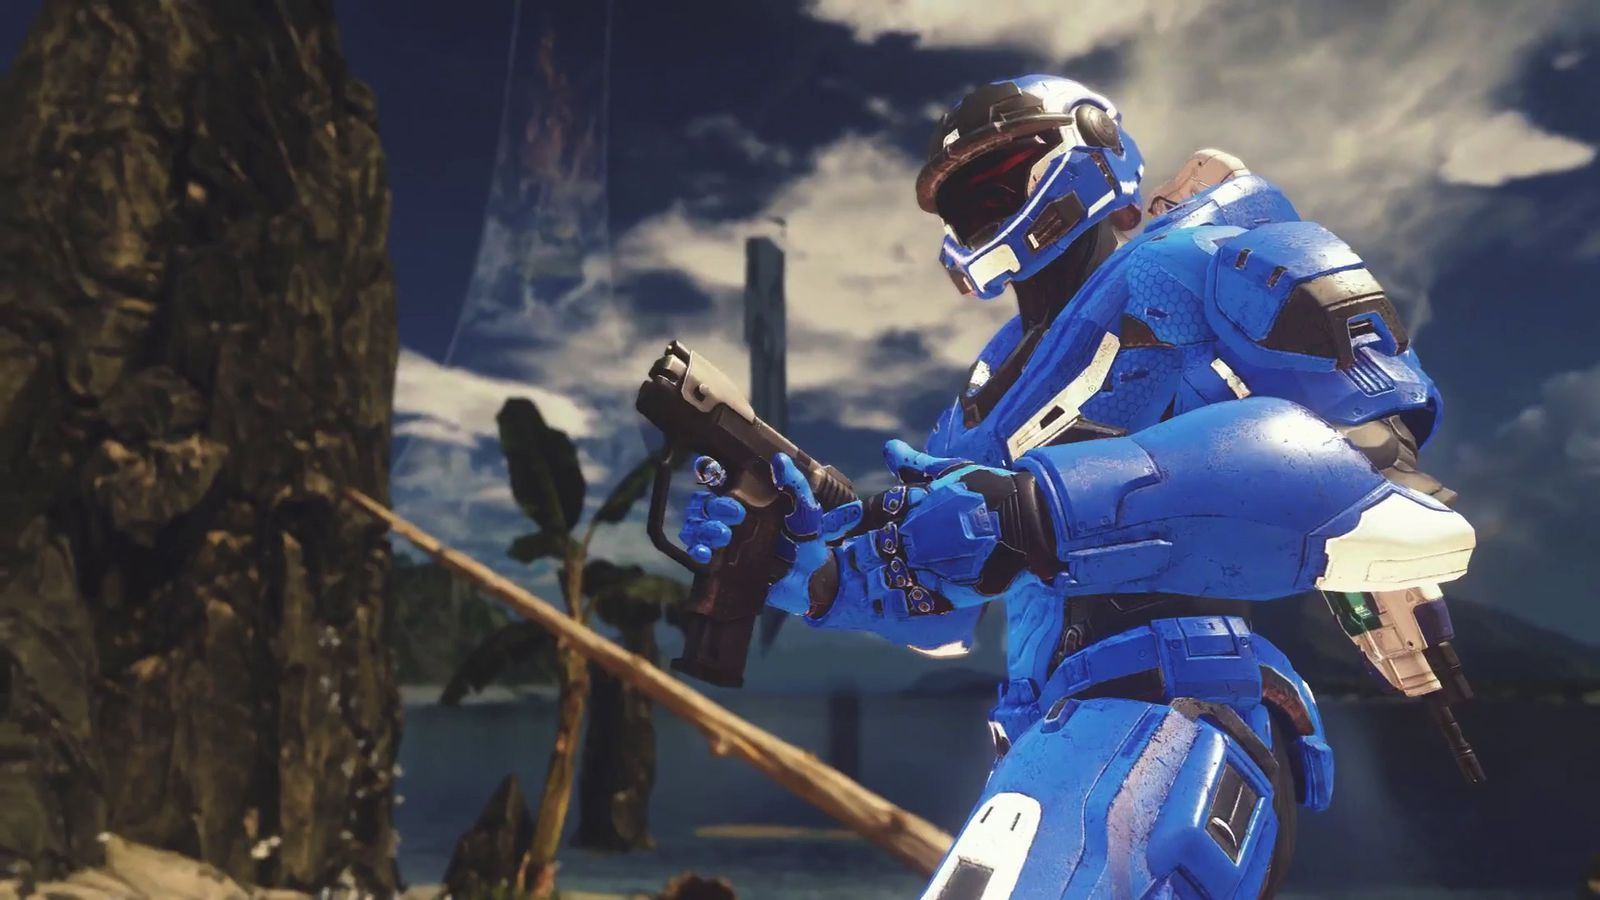 Halo 5 adds hammer storm and teases the return of for Halo ce portent 2 firefight